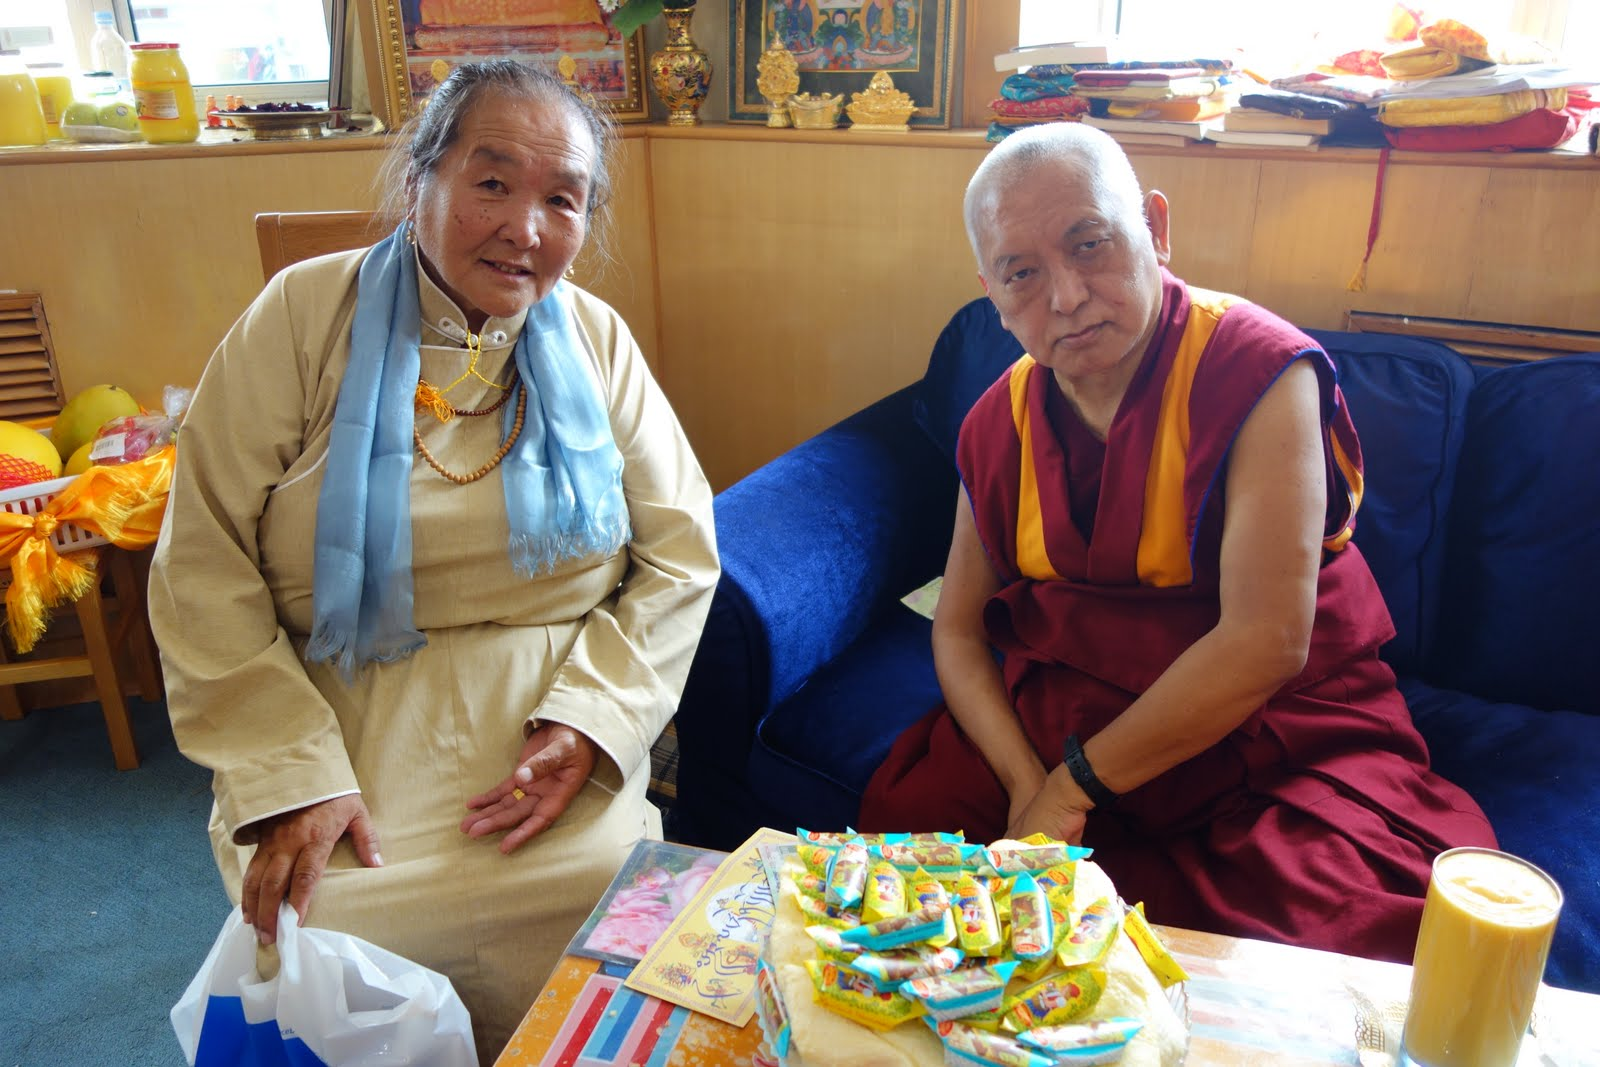 The mother of Rinpoche's Mongolian doctor who treated Rinpoche in Mongolia